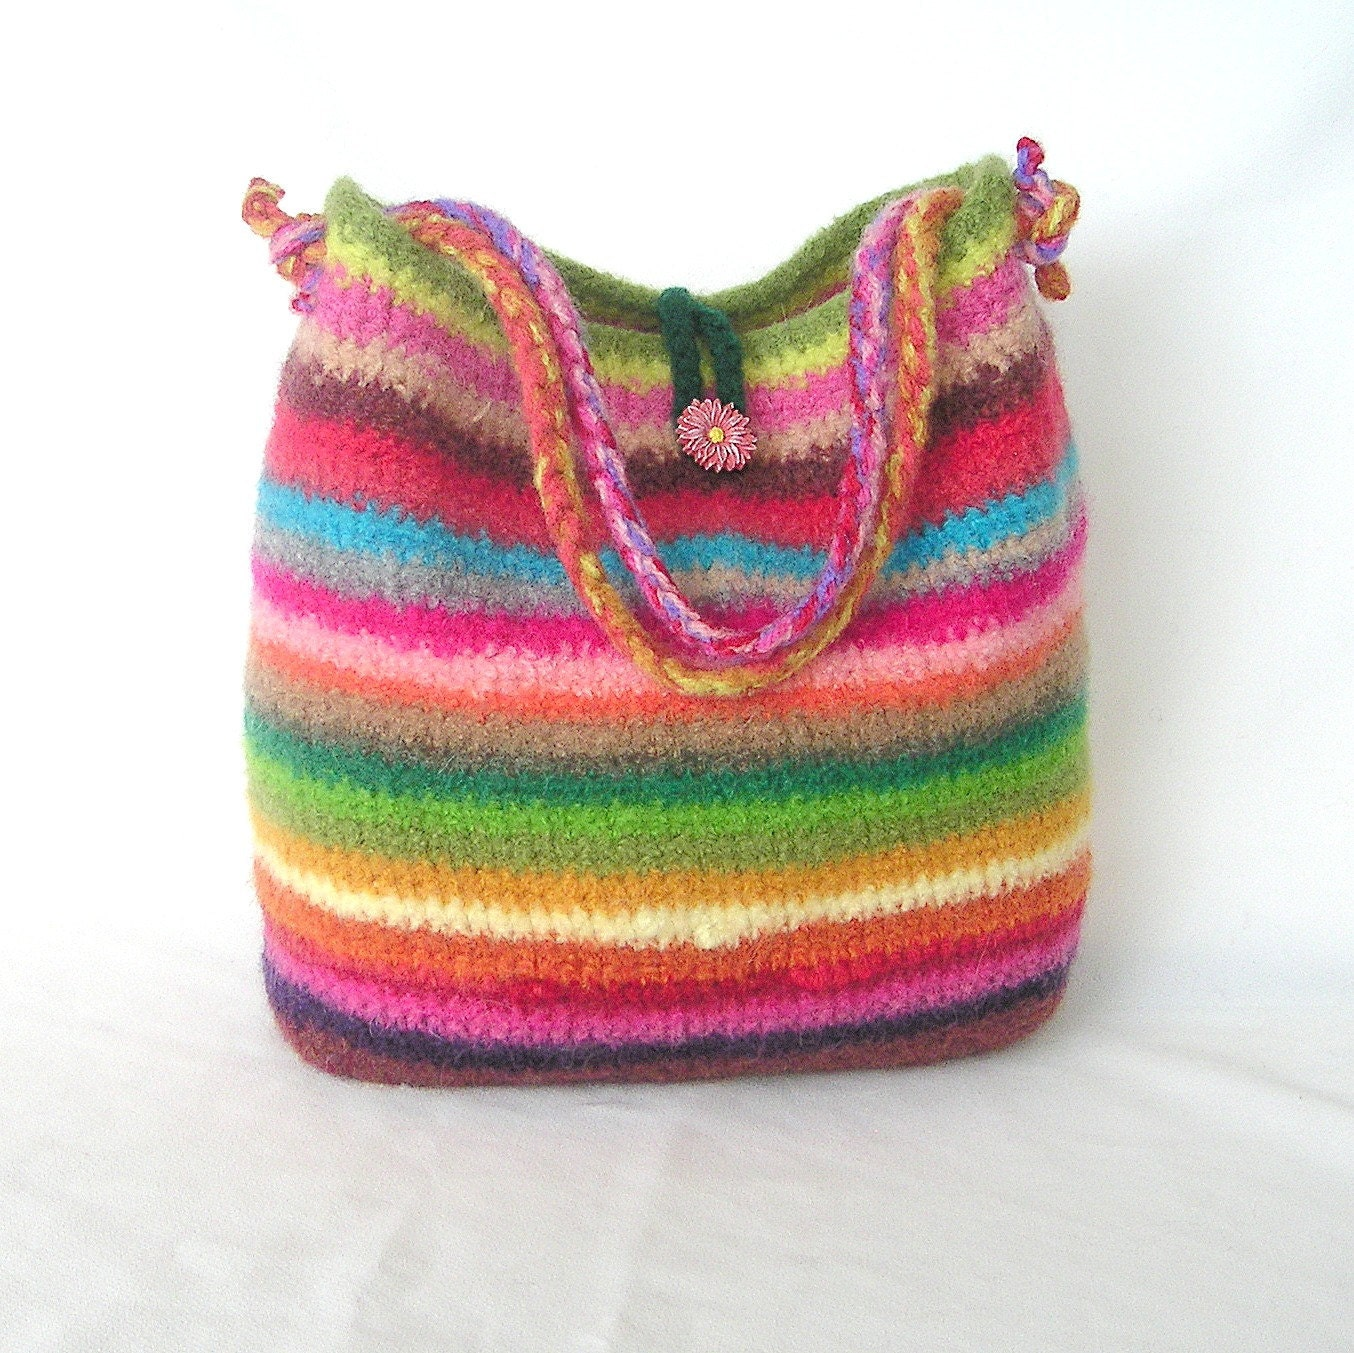 Crochet Felted Tote Bag Pattern : Tote Bag Pattern: November 2015